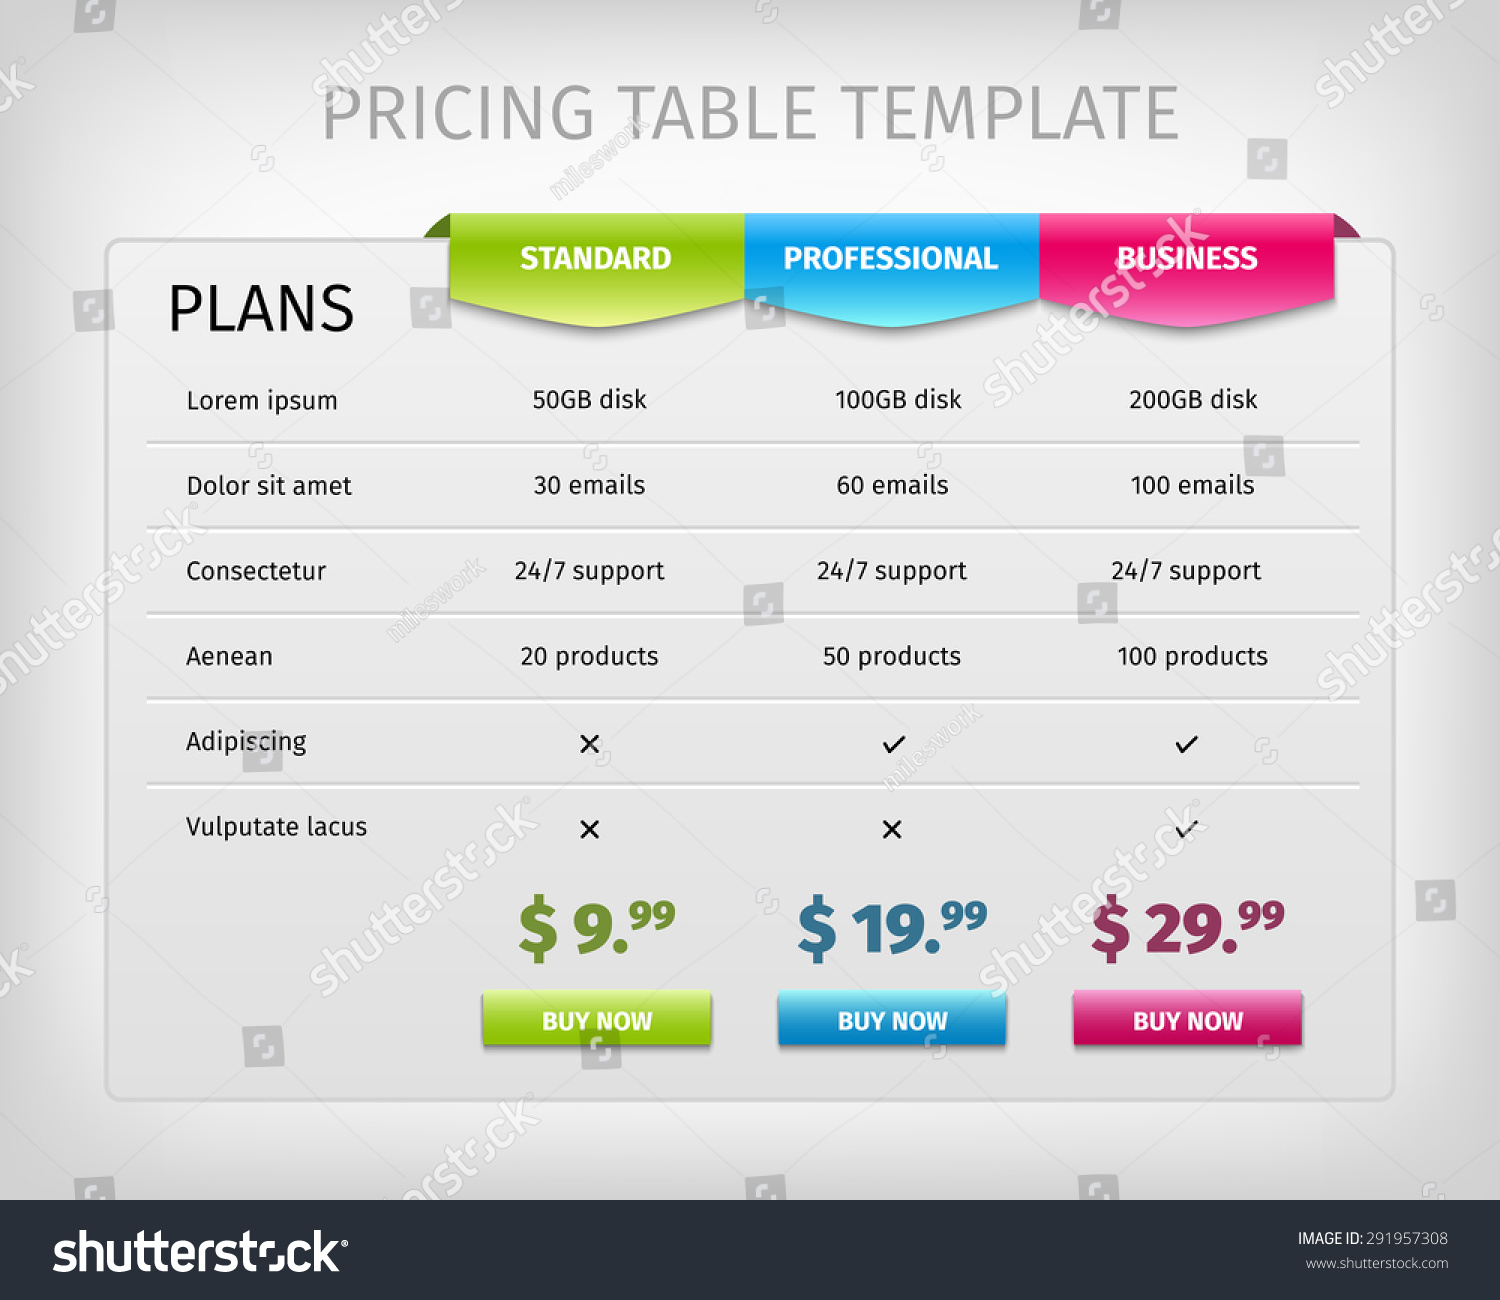 Web Pricing Table Template Business Plan Vector 291957308 – Comparison Grid Template